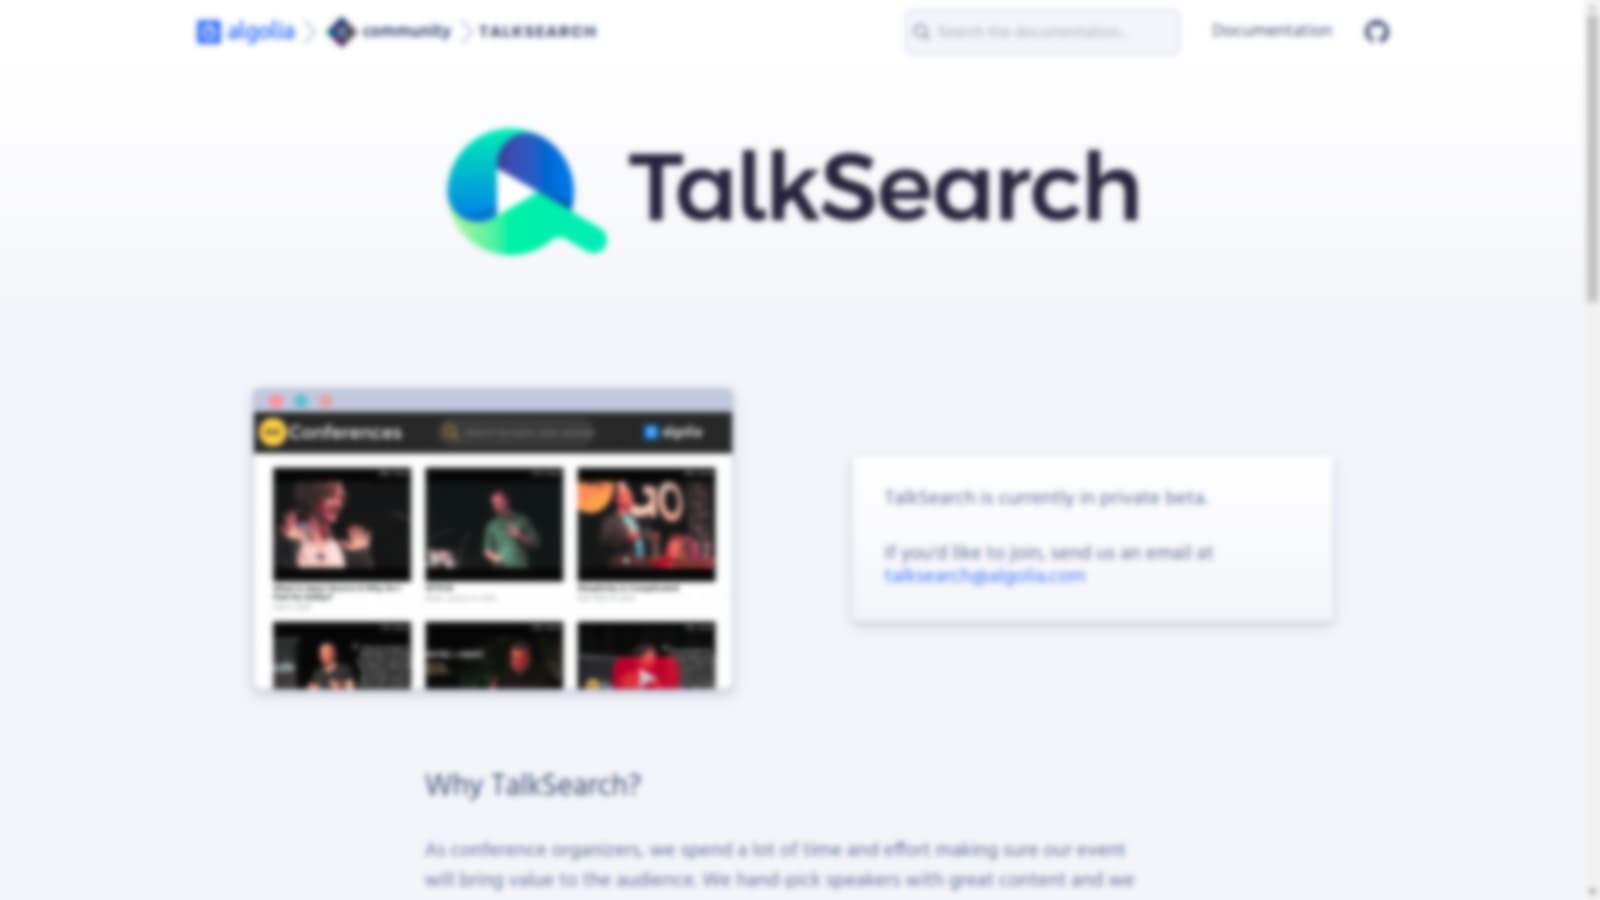 TalkSearch